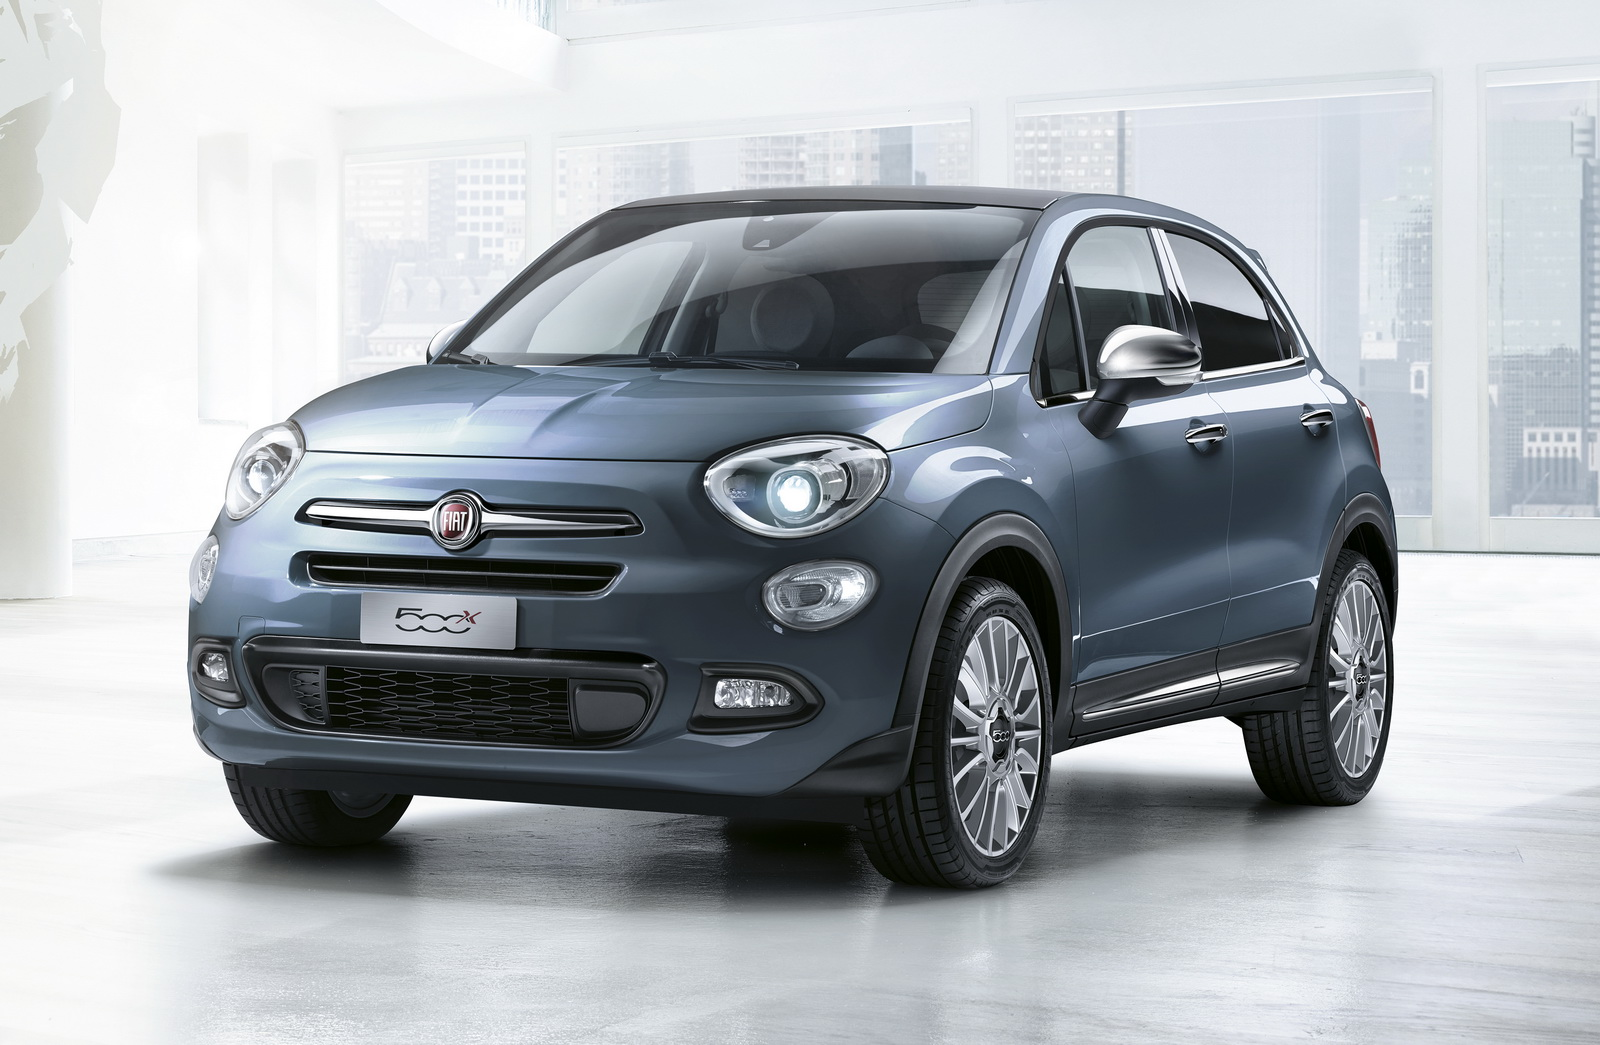 Fiat 500X Updated for 2017, Order Books Now Open - autoevolution